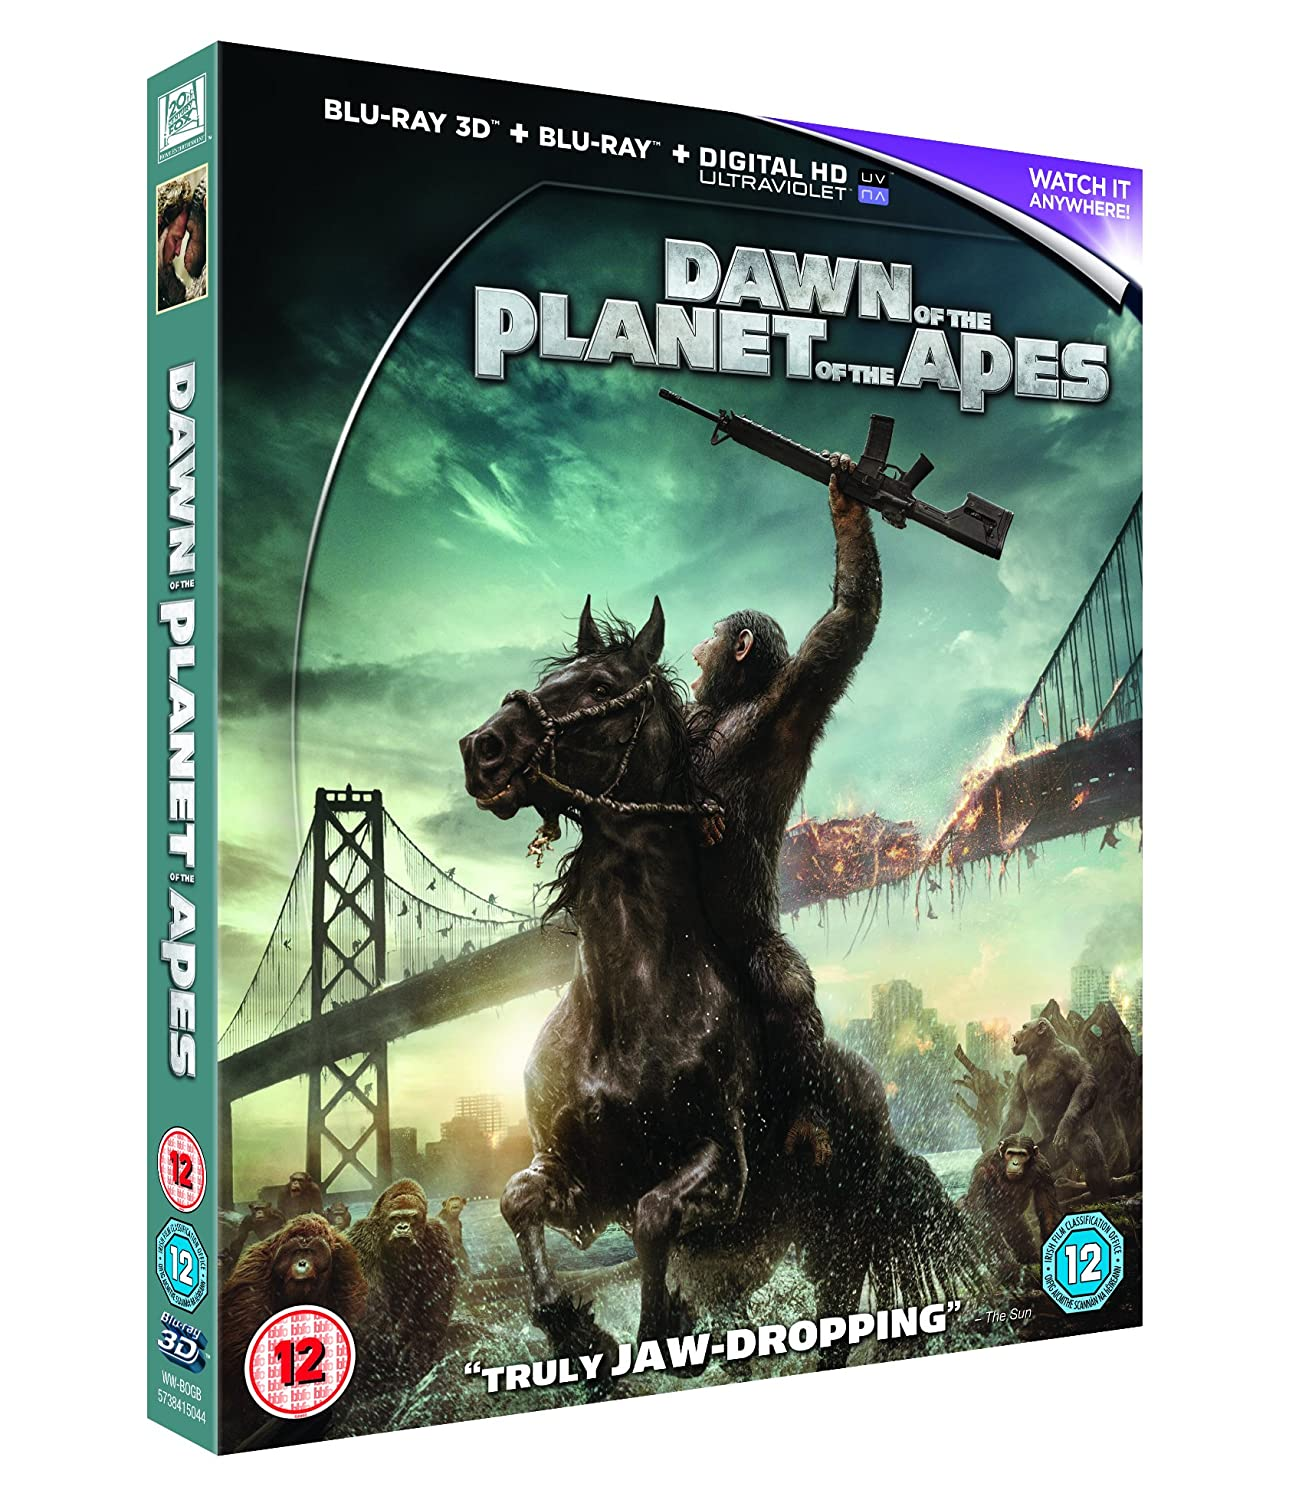 Amazon.com: Dawn of the Planet of the Apes [Blu-ray 3D + Blu-ray ...